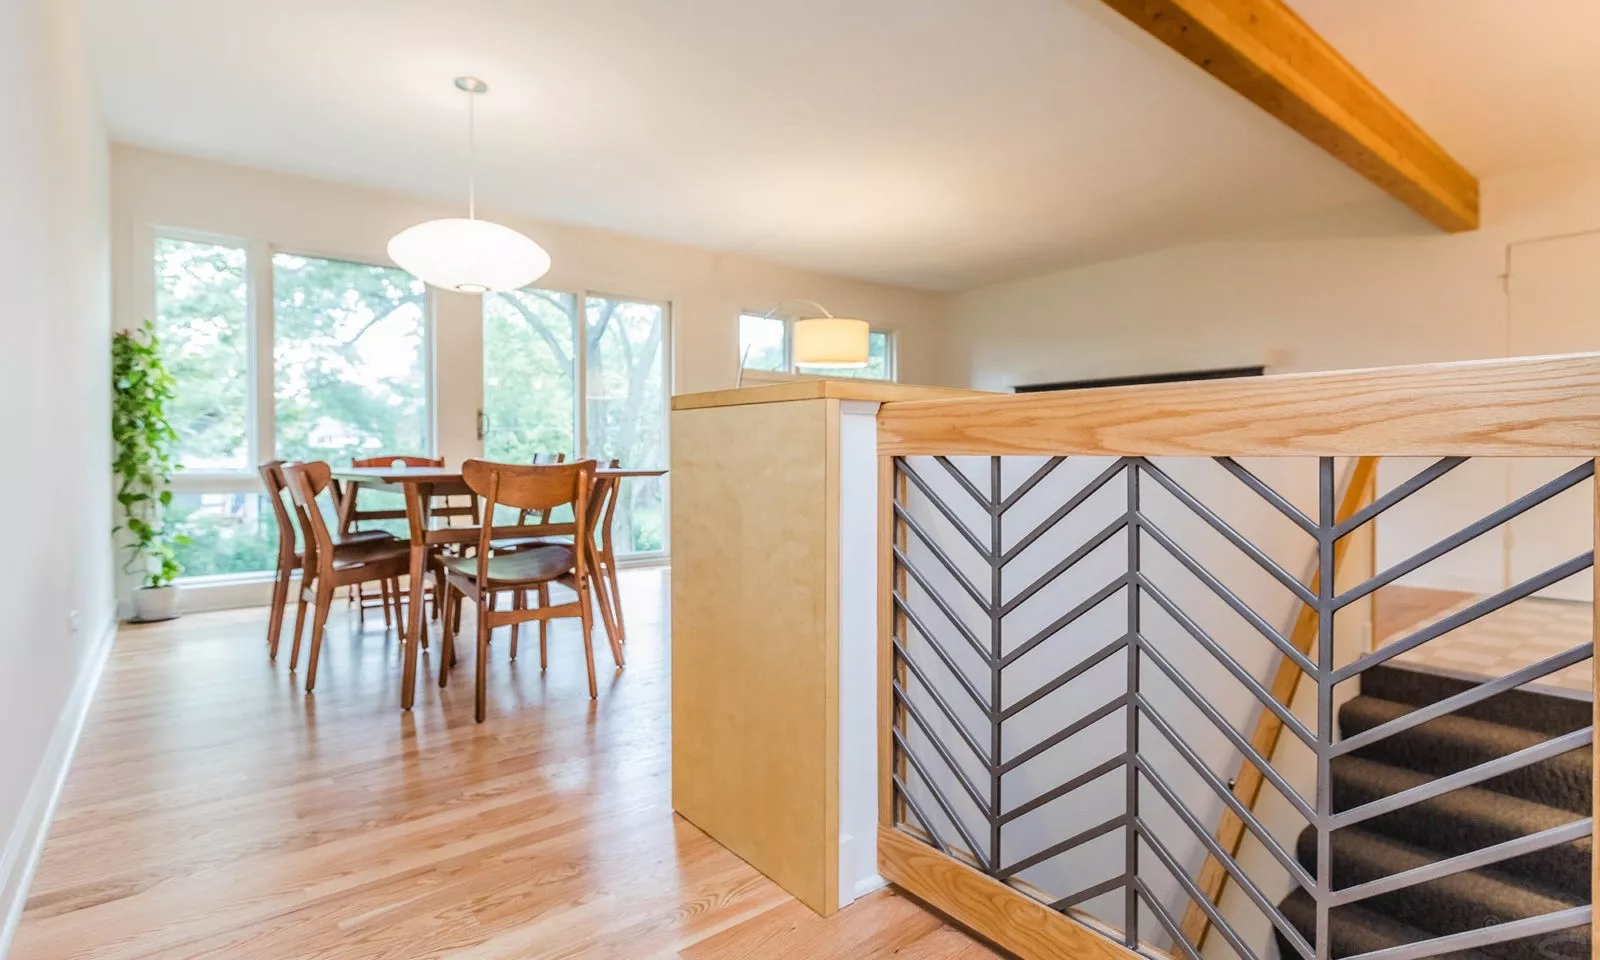 Cool Ranch Glen Ellyn Reno Expert Remodeling And Additions For | Mid Century Modern Stair Handrail | Wrought Iron | Basement | Bannister | Modern Style | Contemporary Curved Staircase